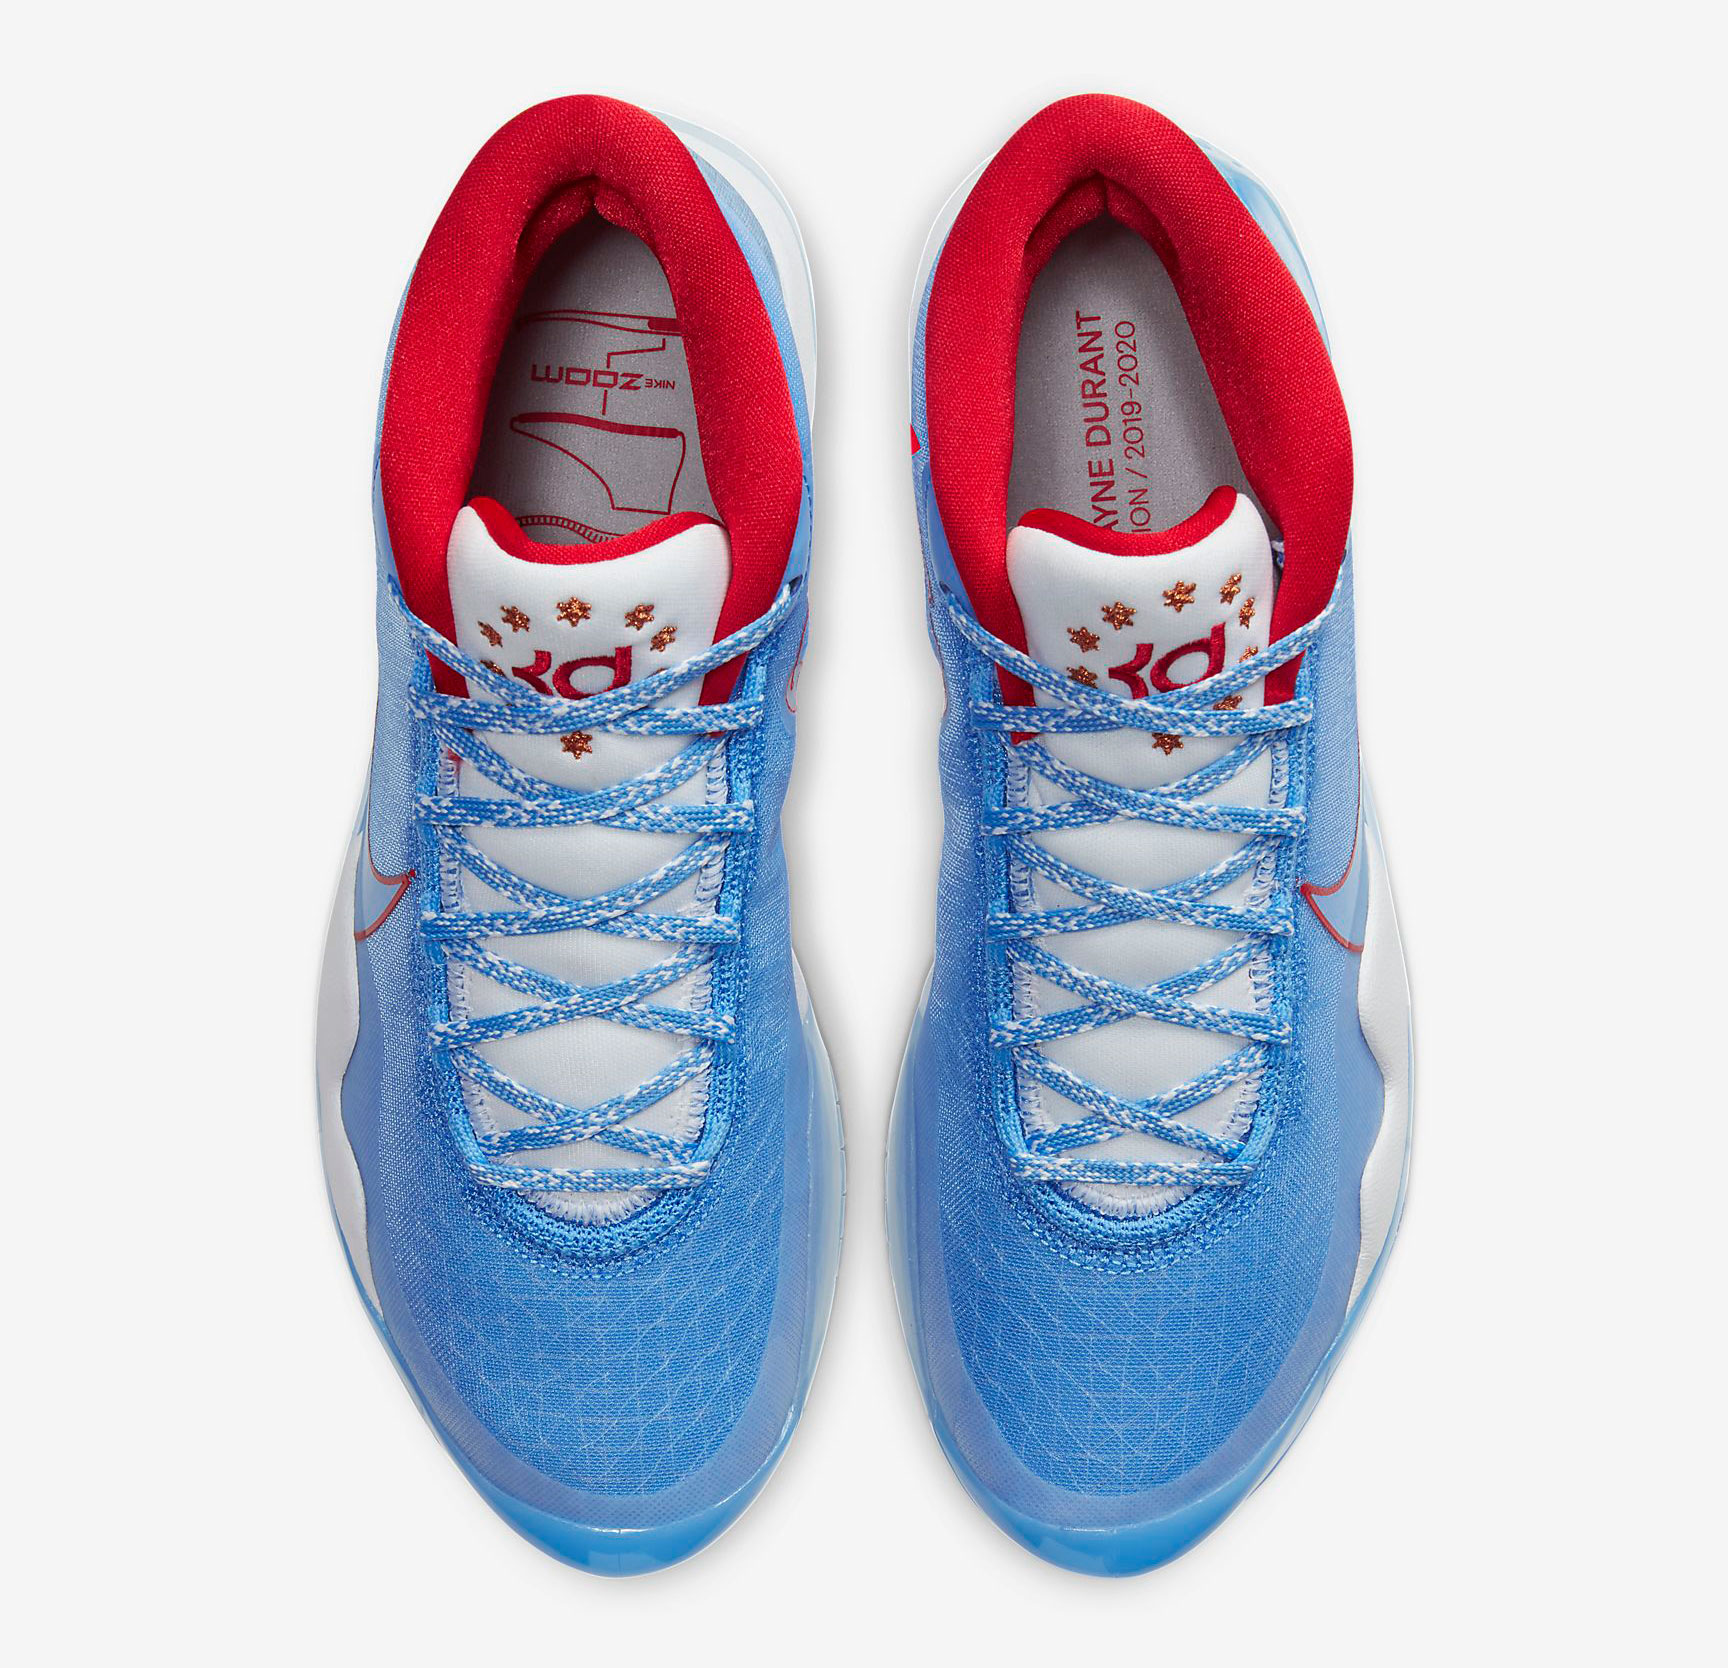 nike-kd-12-don-c-all-star-release-date-4